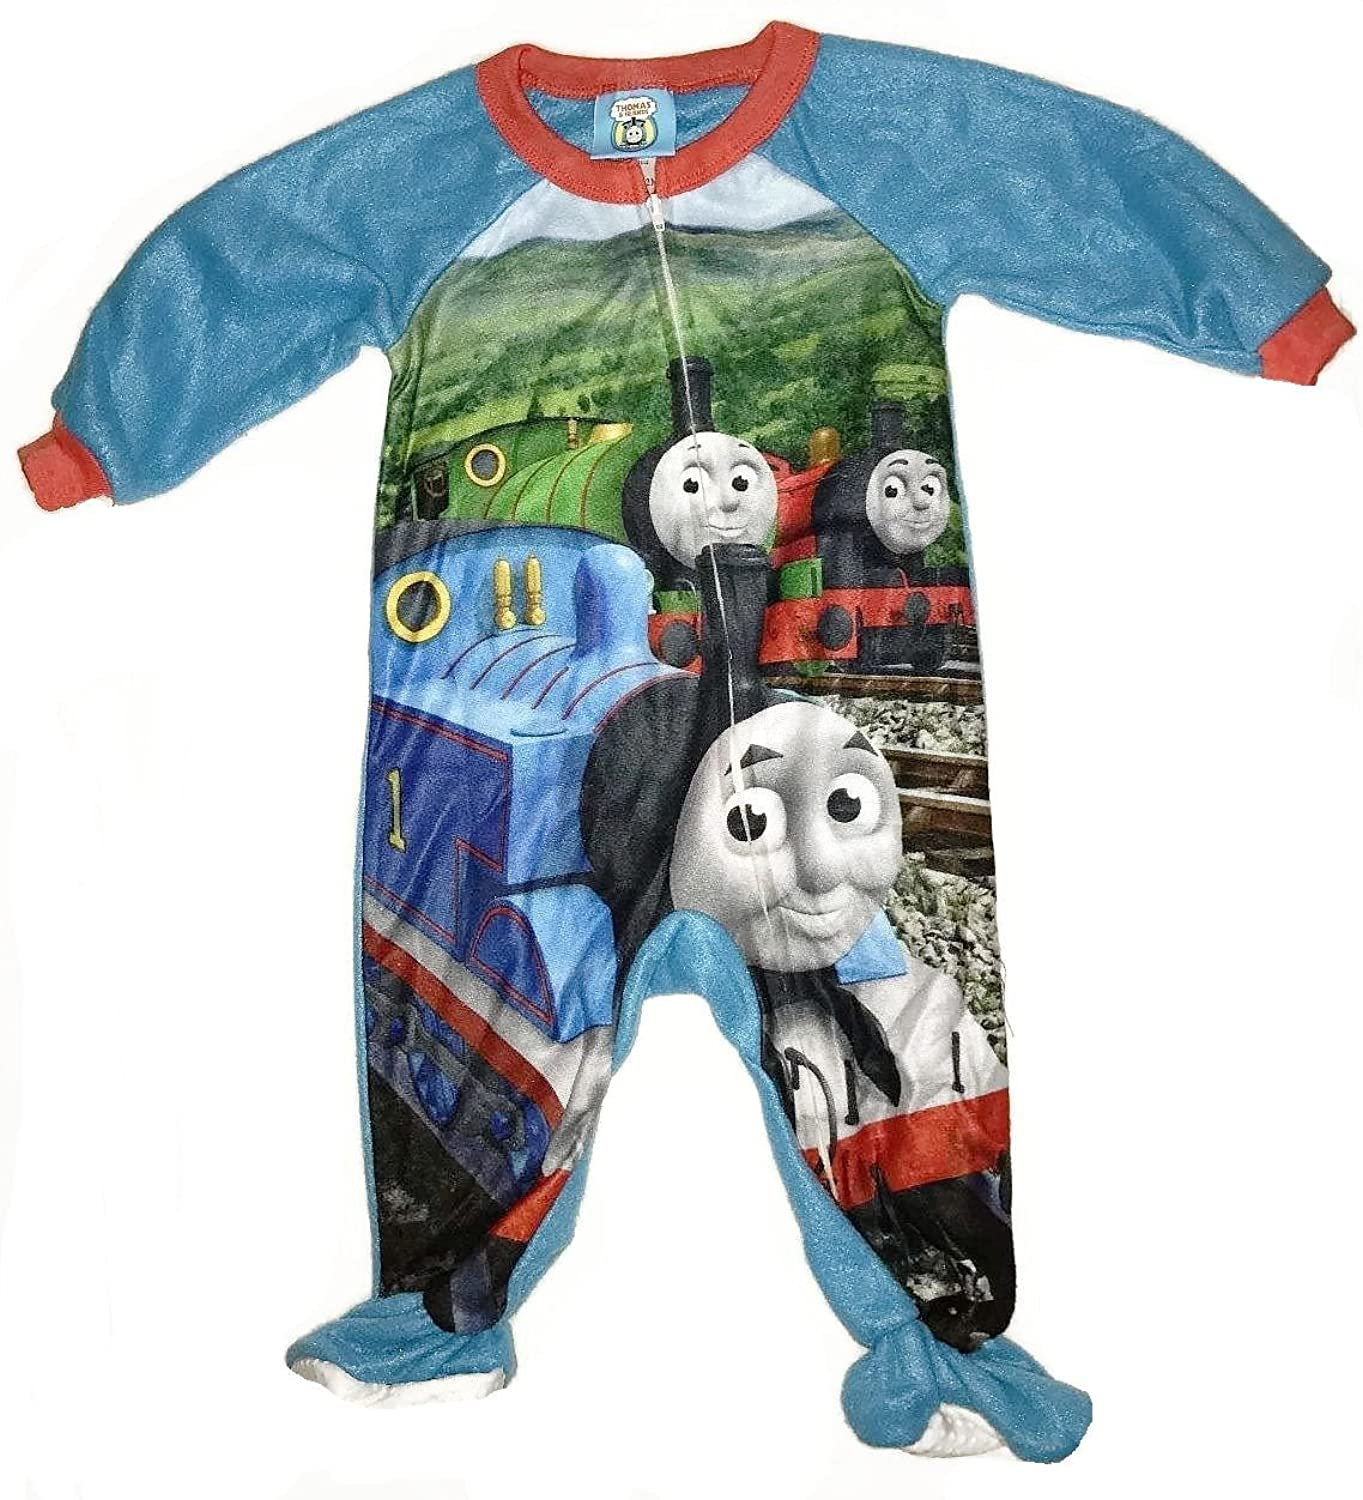 Thomas and Friends Toddler Boy Pajamas 18 Months New Thomas the Train